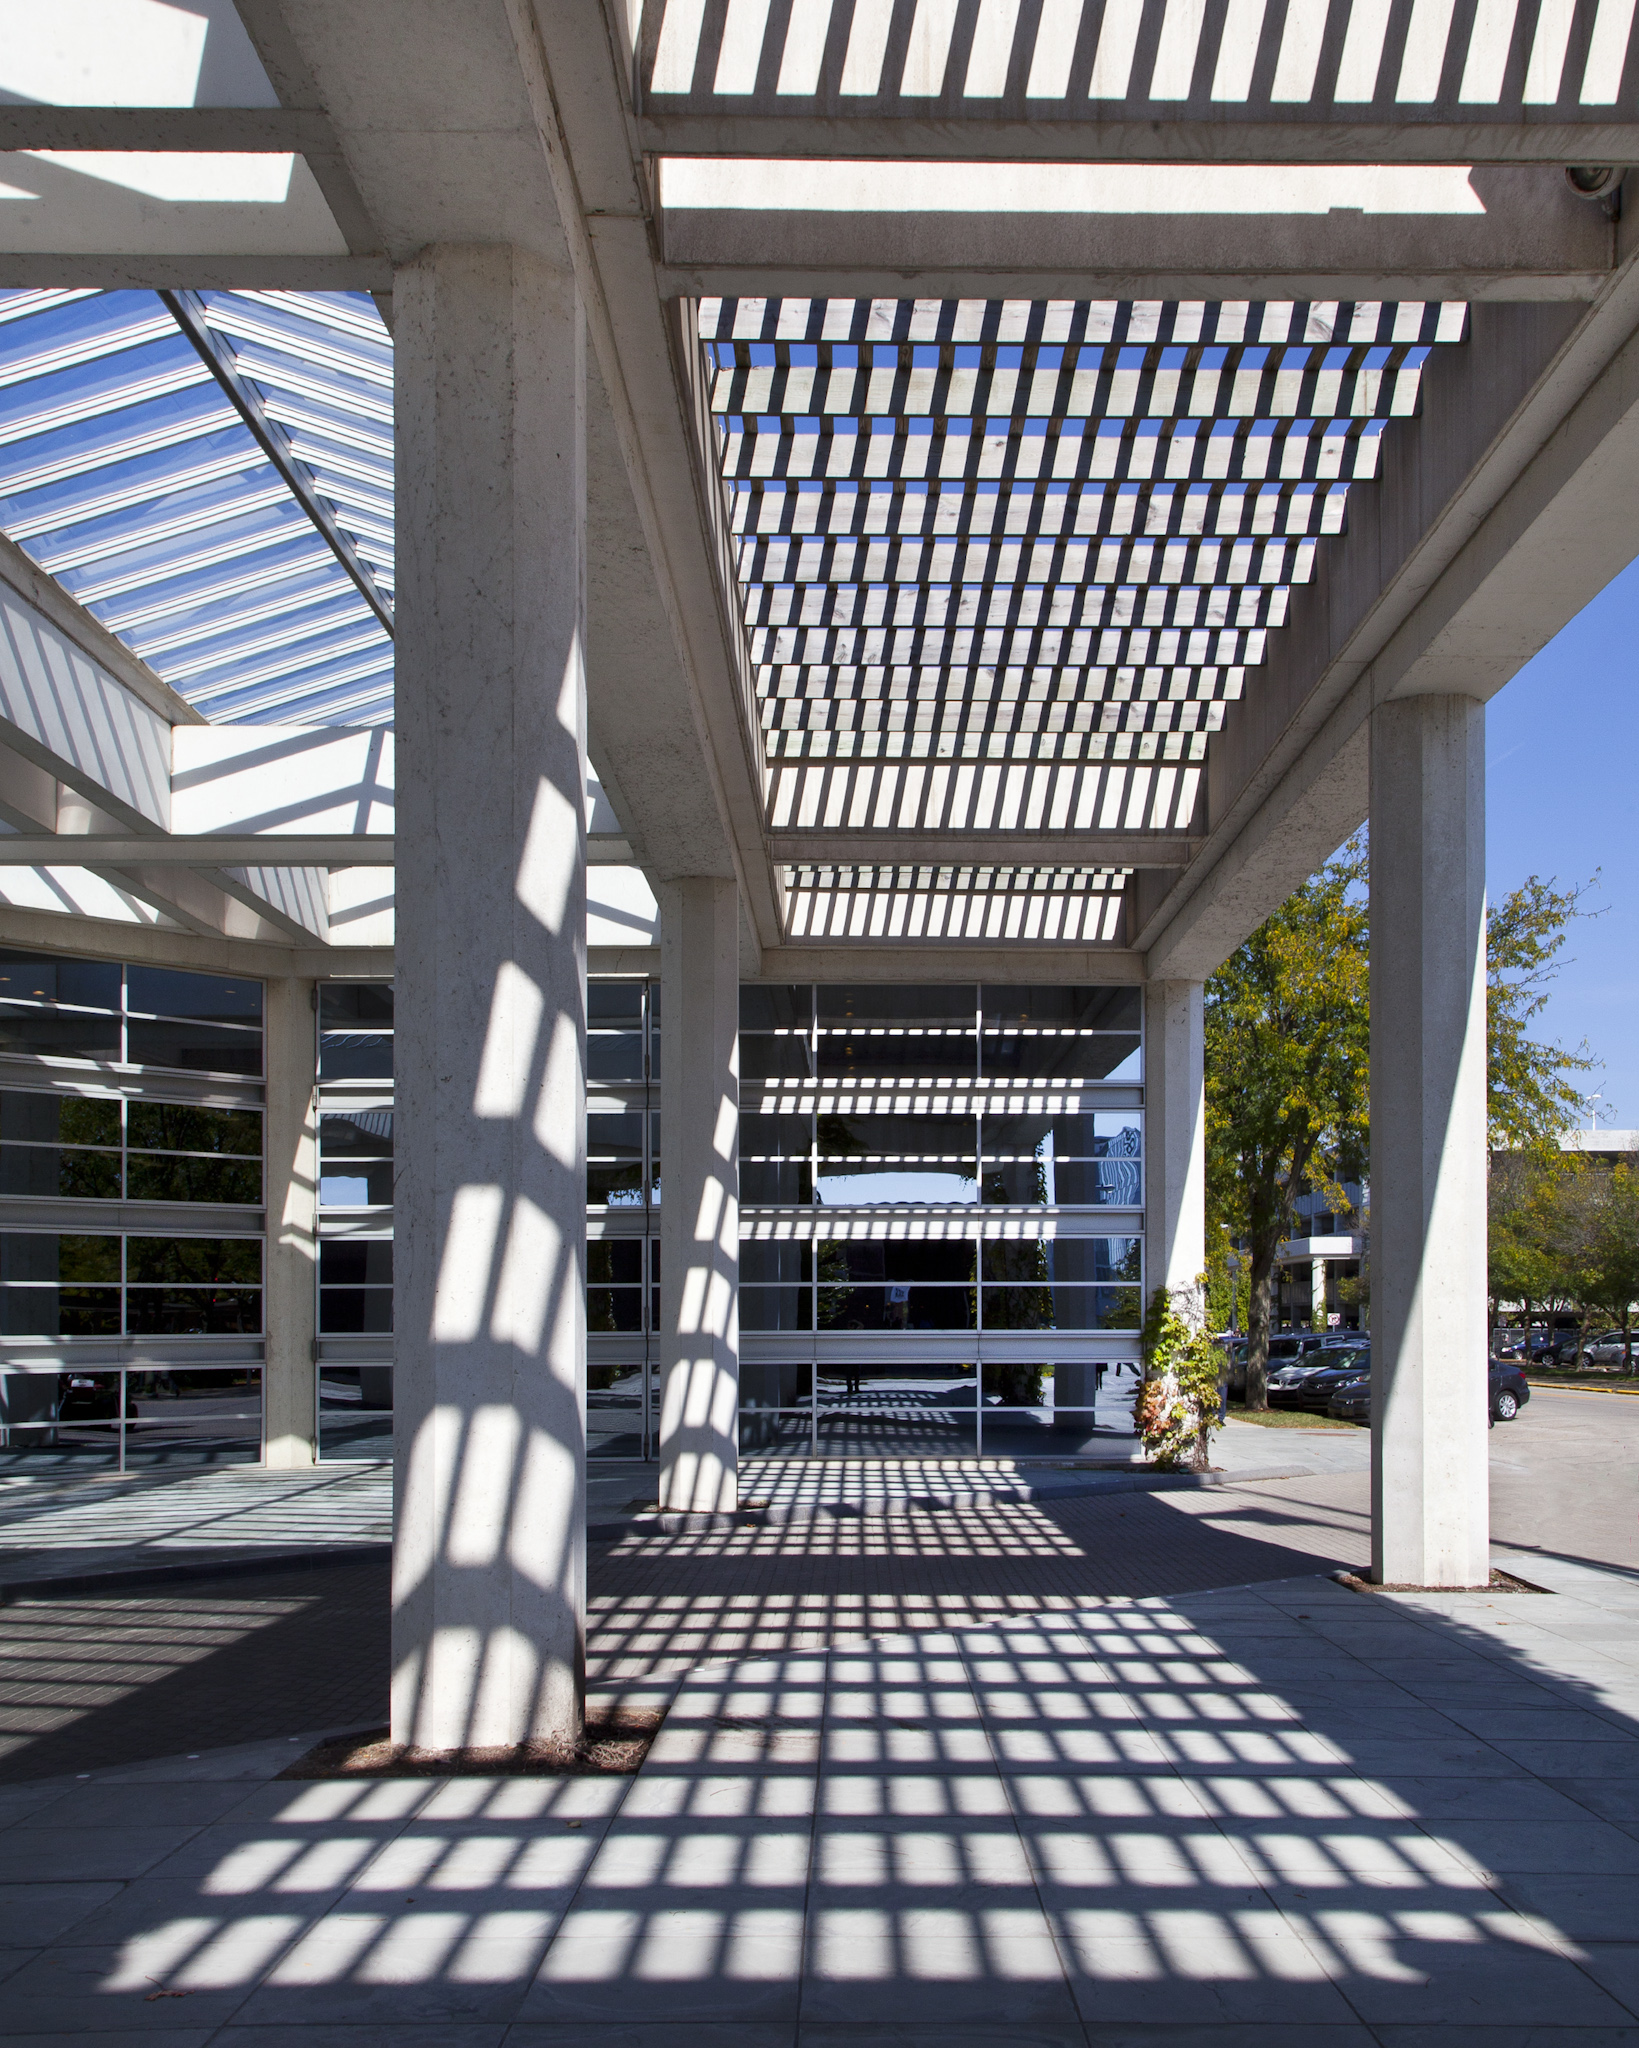 A covered walkway outside a building with sunlight coming through slits.